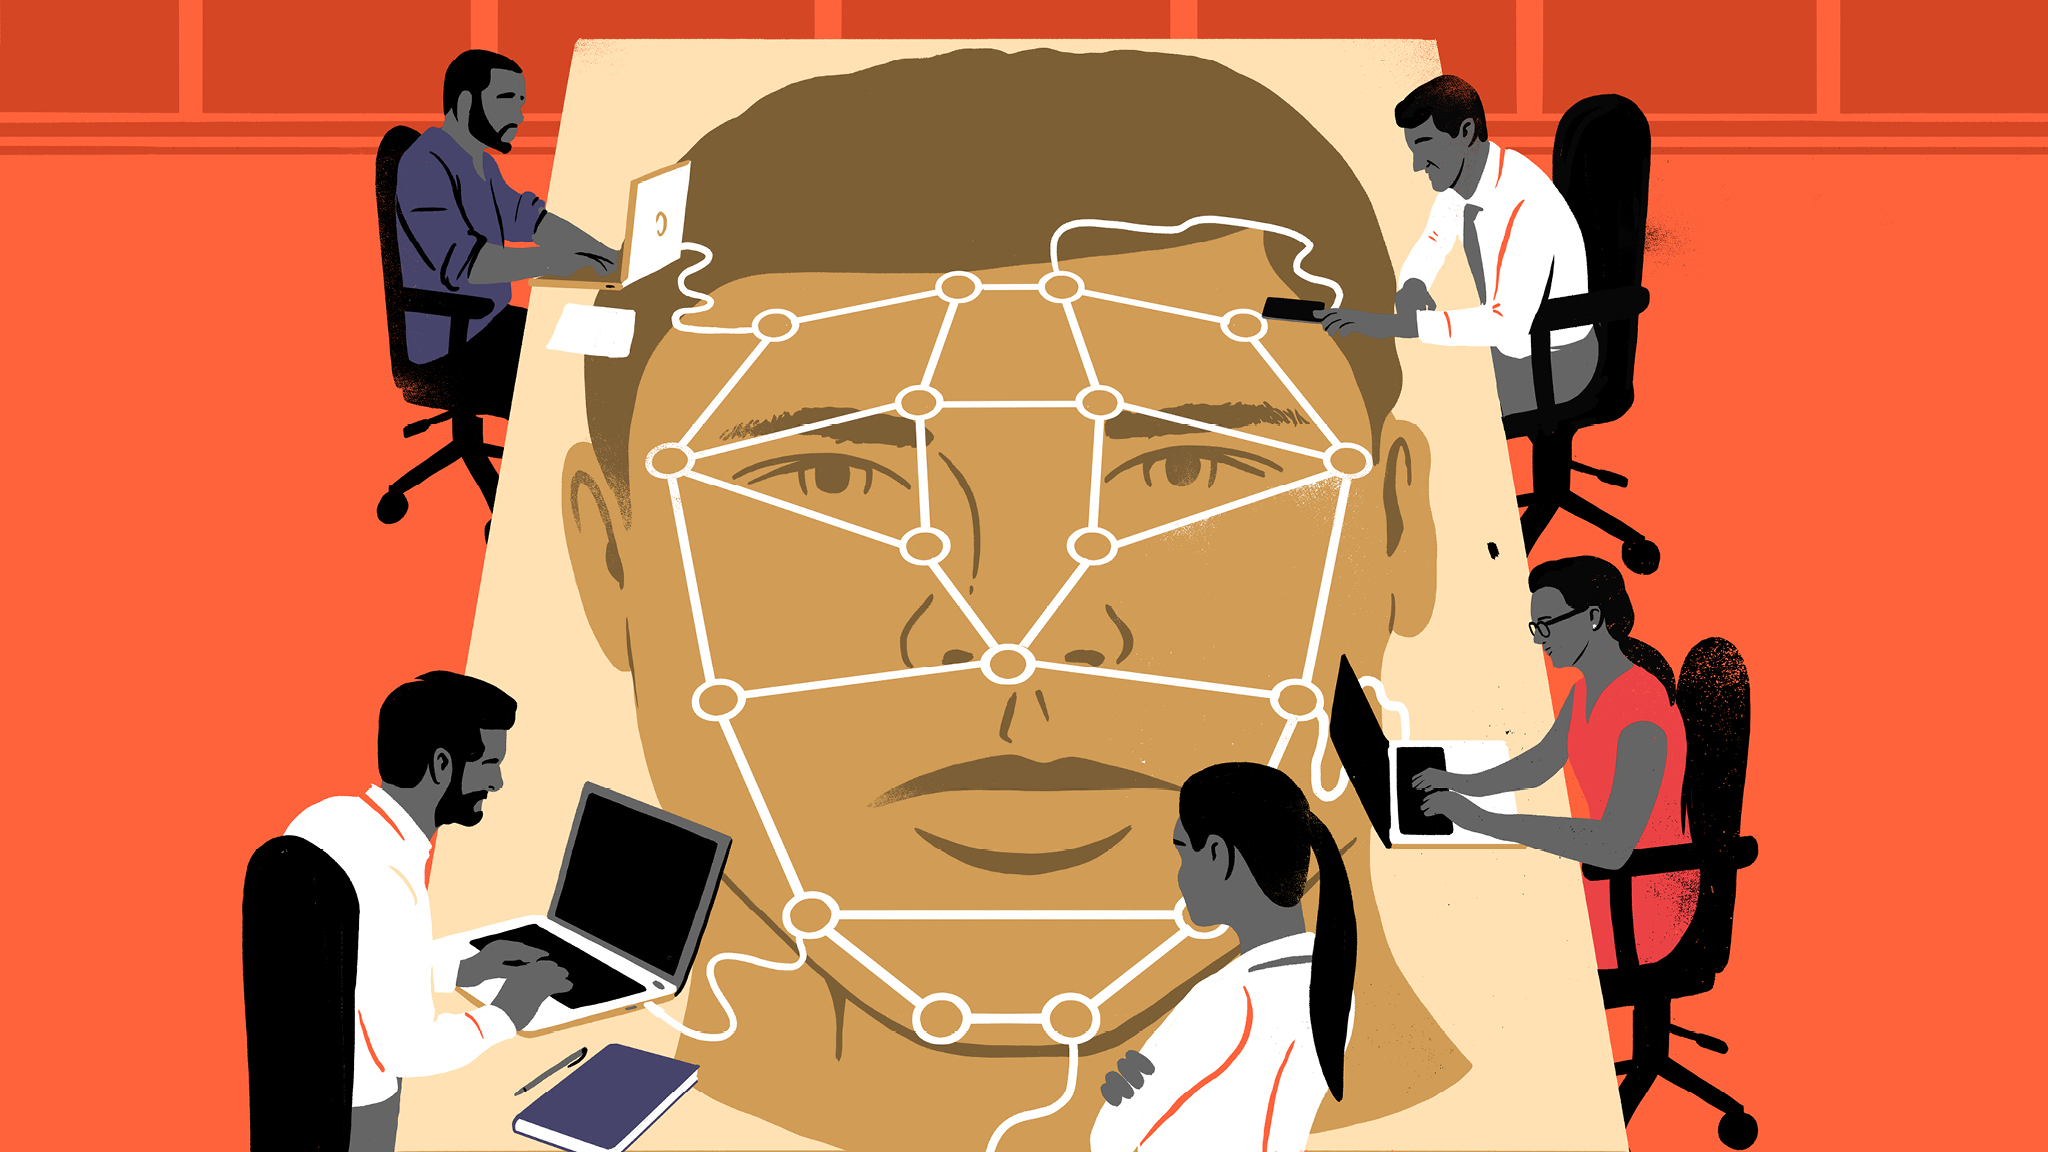 Who's using your face? The ugly truth about facial recognition   Financial Times